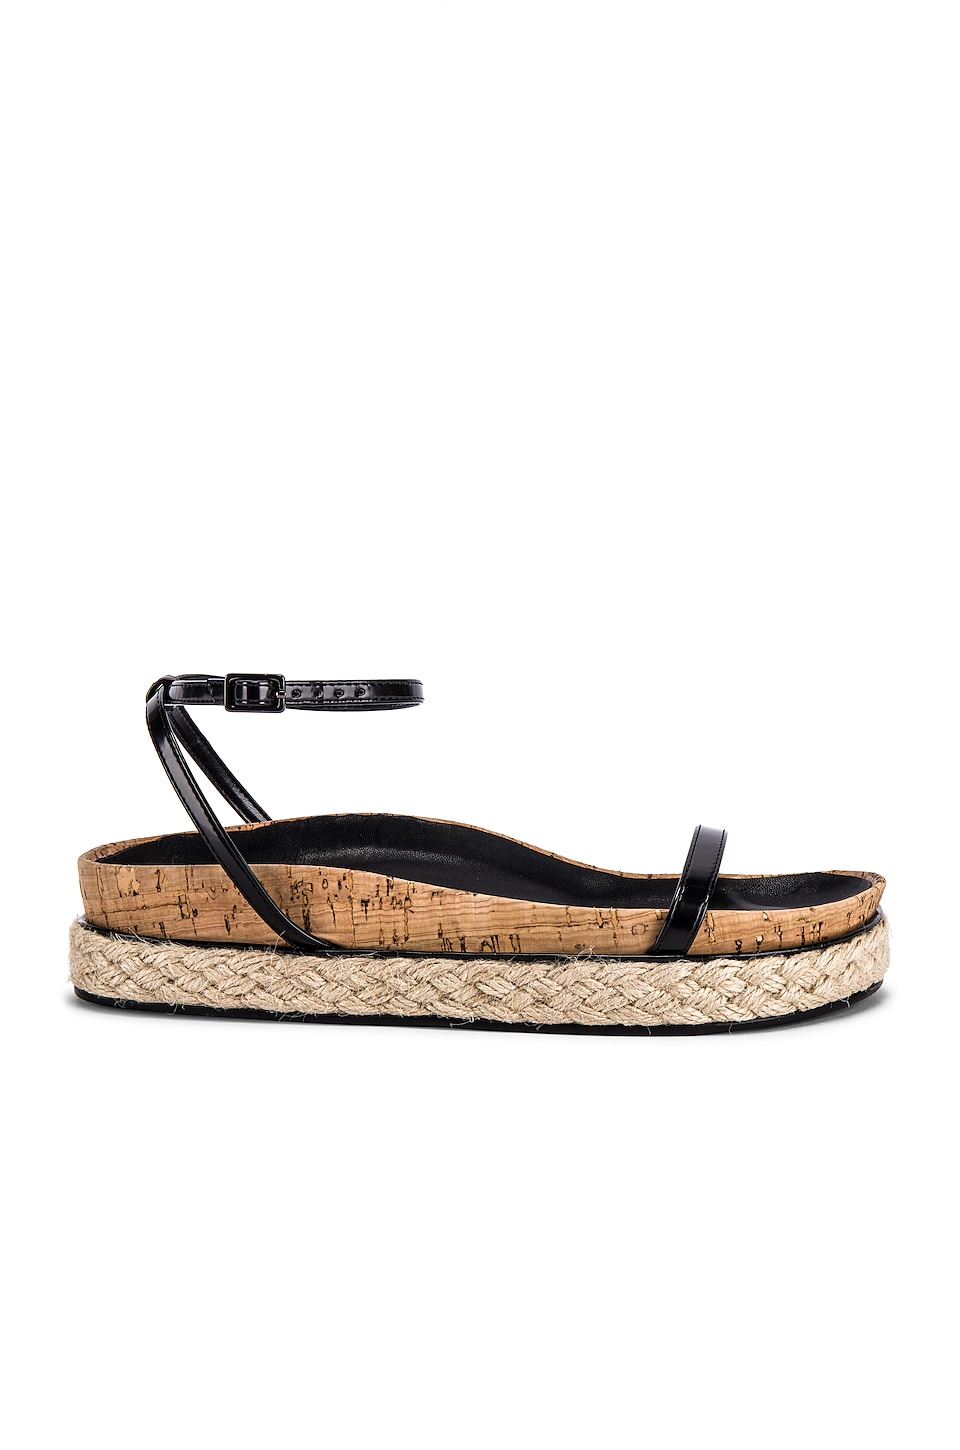 RAYE Cait Sandal in Black